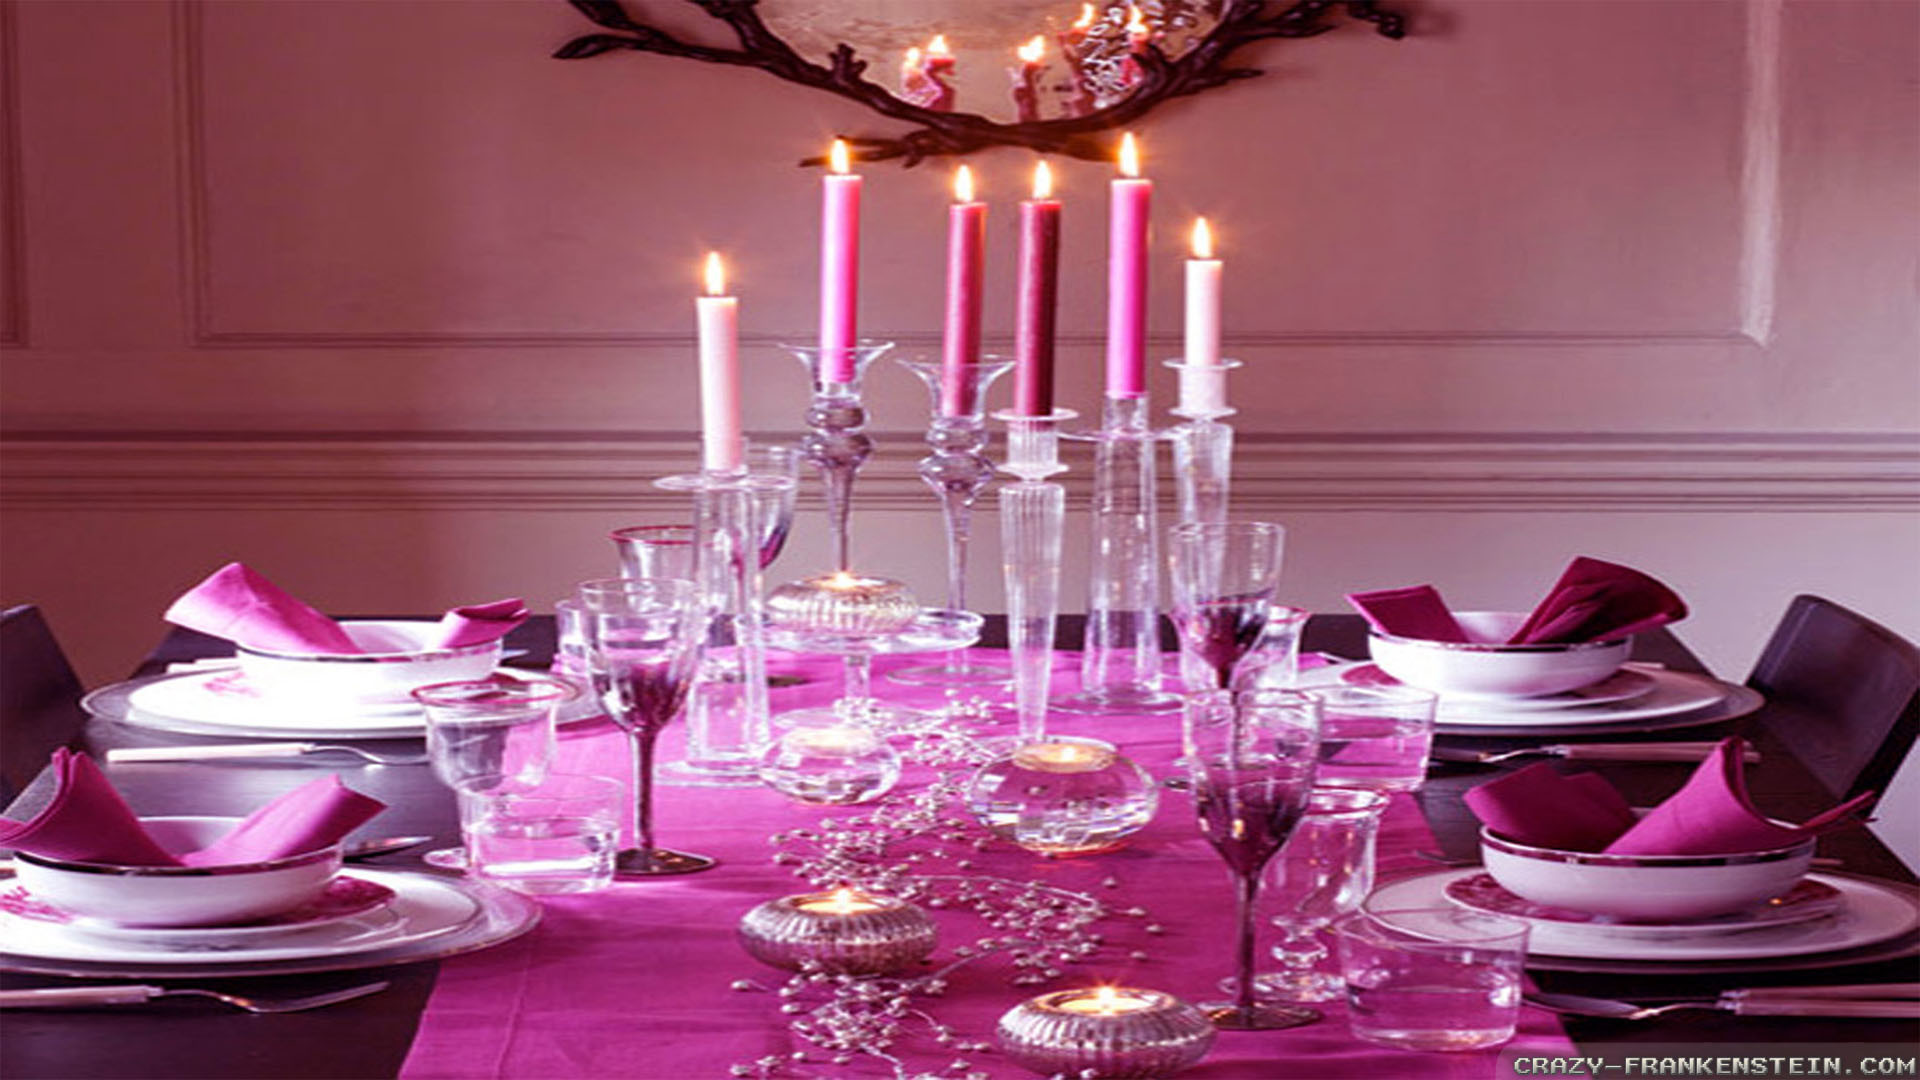 Wallpaper: Pink Christmas romantic table wallpapers. Resolution: 1024×768 |  1280×1024 | 1600×1200. Widescreen Res: 1440×900 | 1680×1050 | 1920×1200